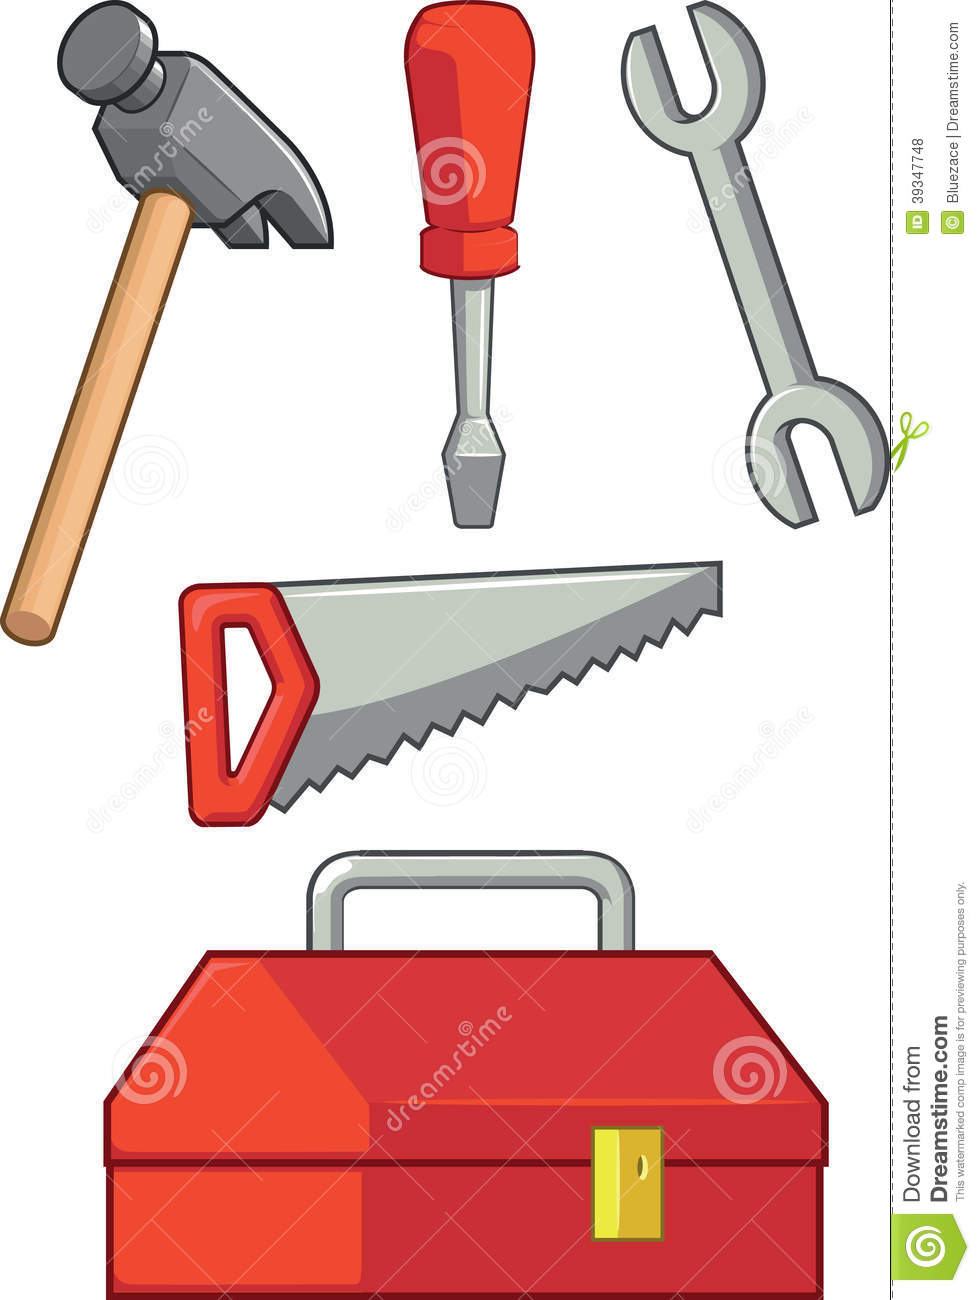 Hammer And Nail Clip Art Images Stock Photos amp Vectors